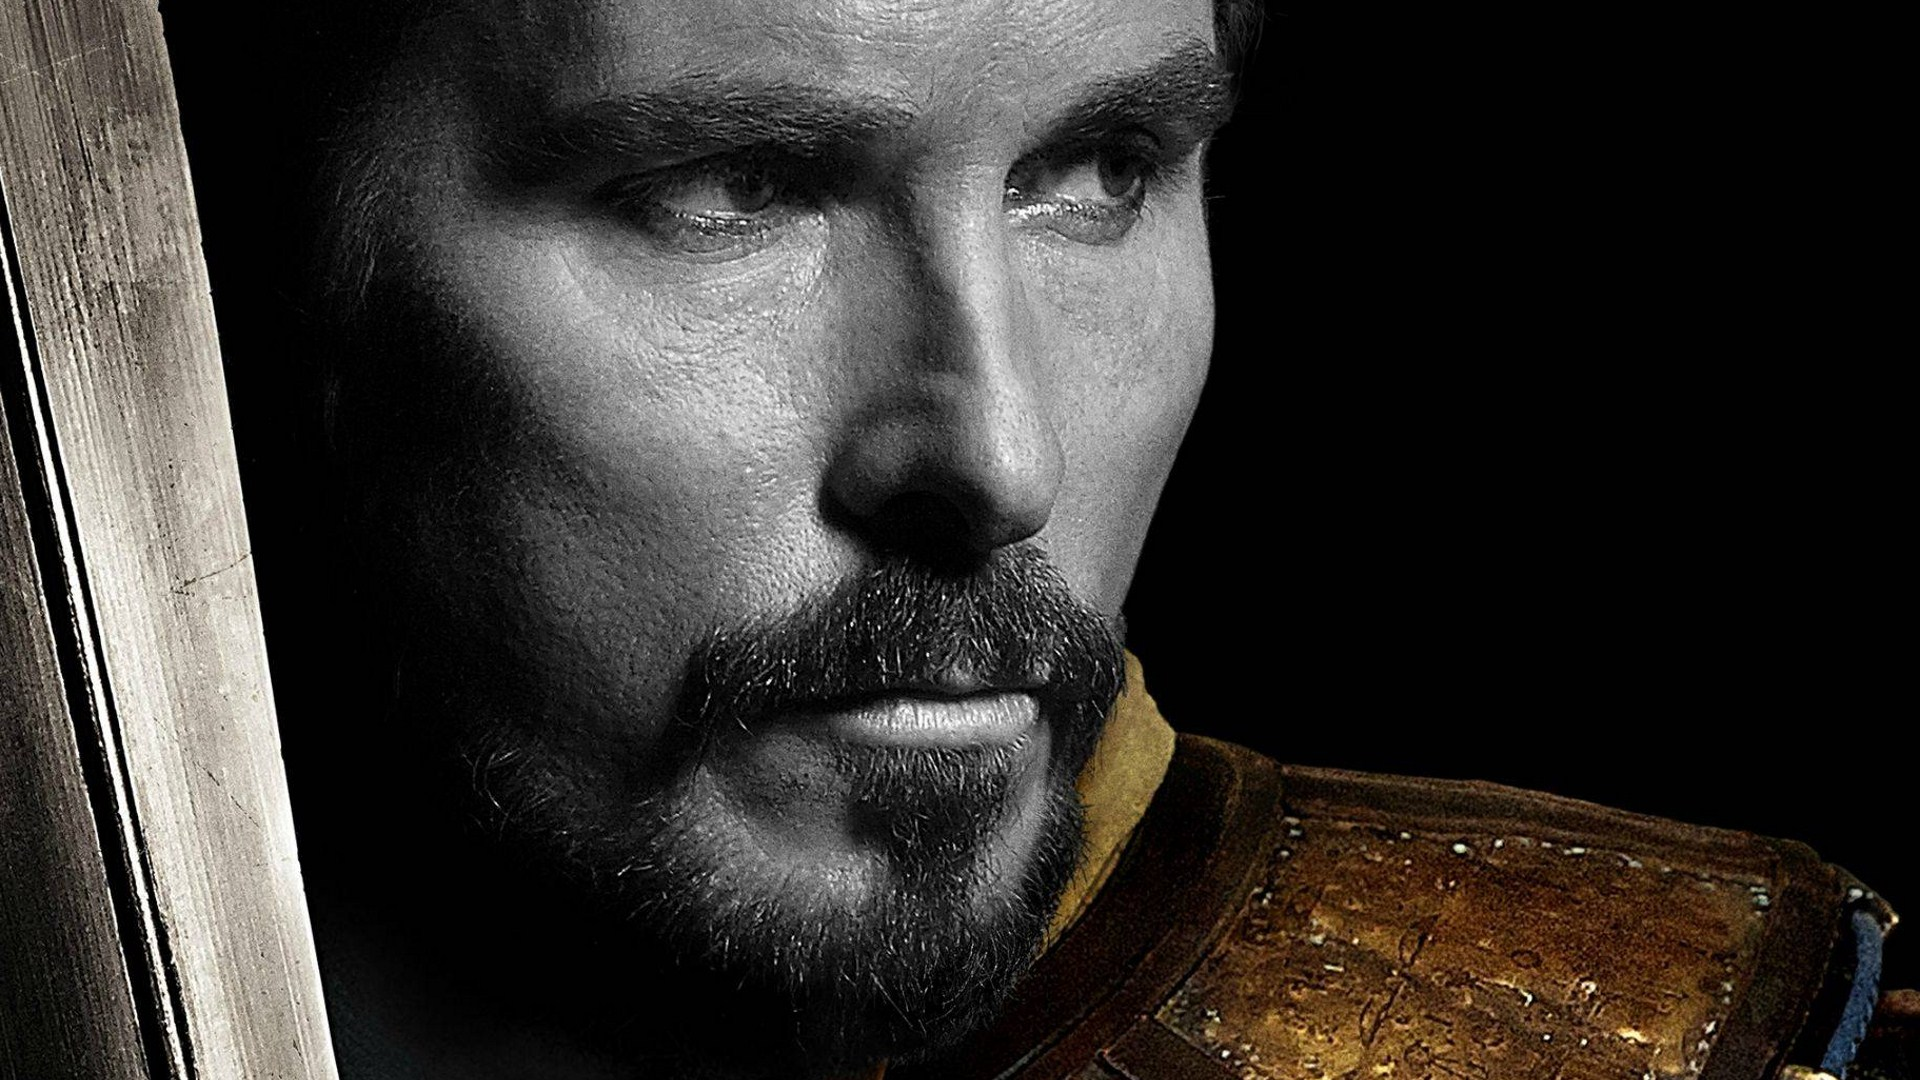 Christian Bale Wallpapers High Resolution And Quality Download